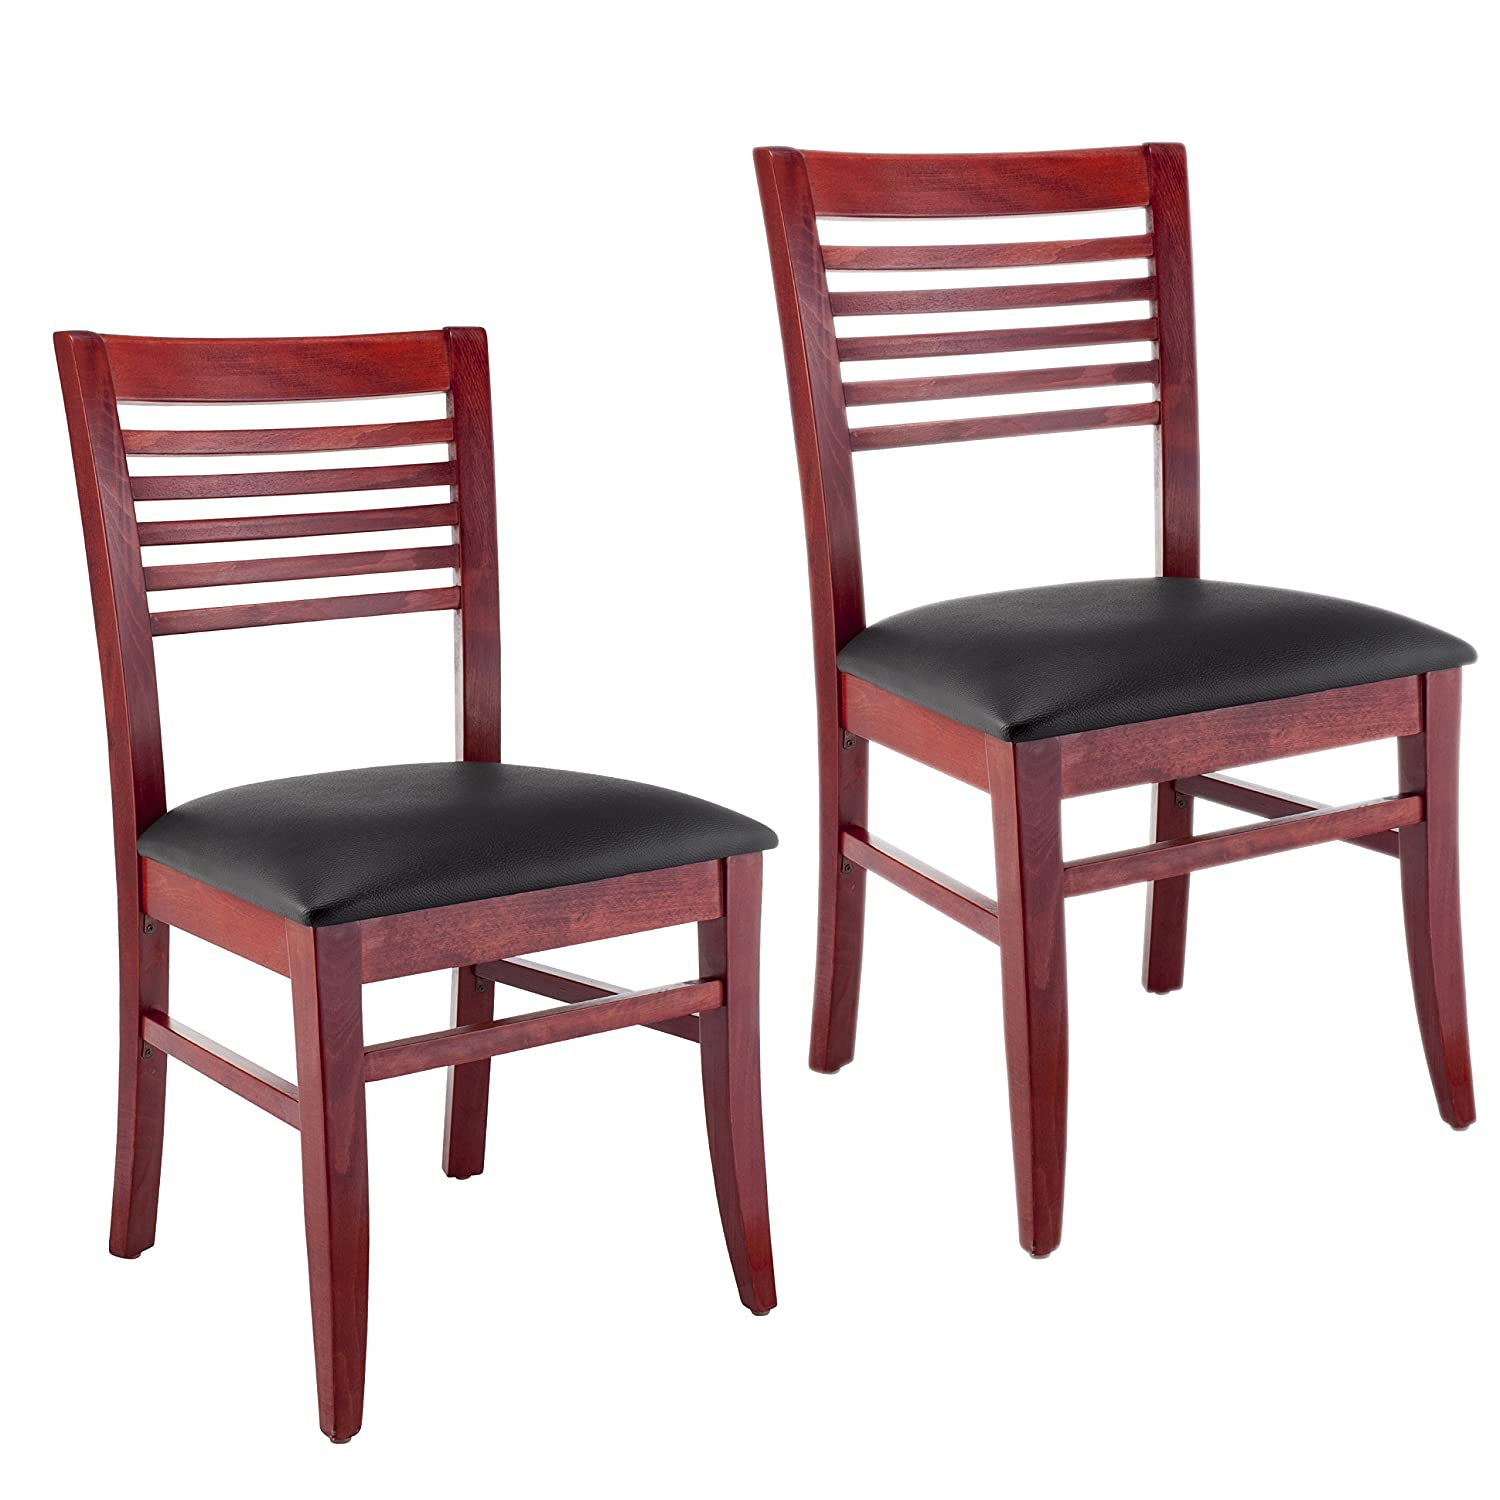 Amazon com beechwood mountain bsd 49s m solid beech wood side chairs in mahogany for kitchen dining set of 2 na kitchen dining